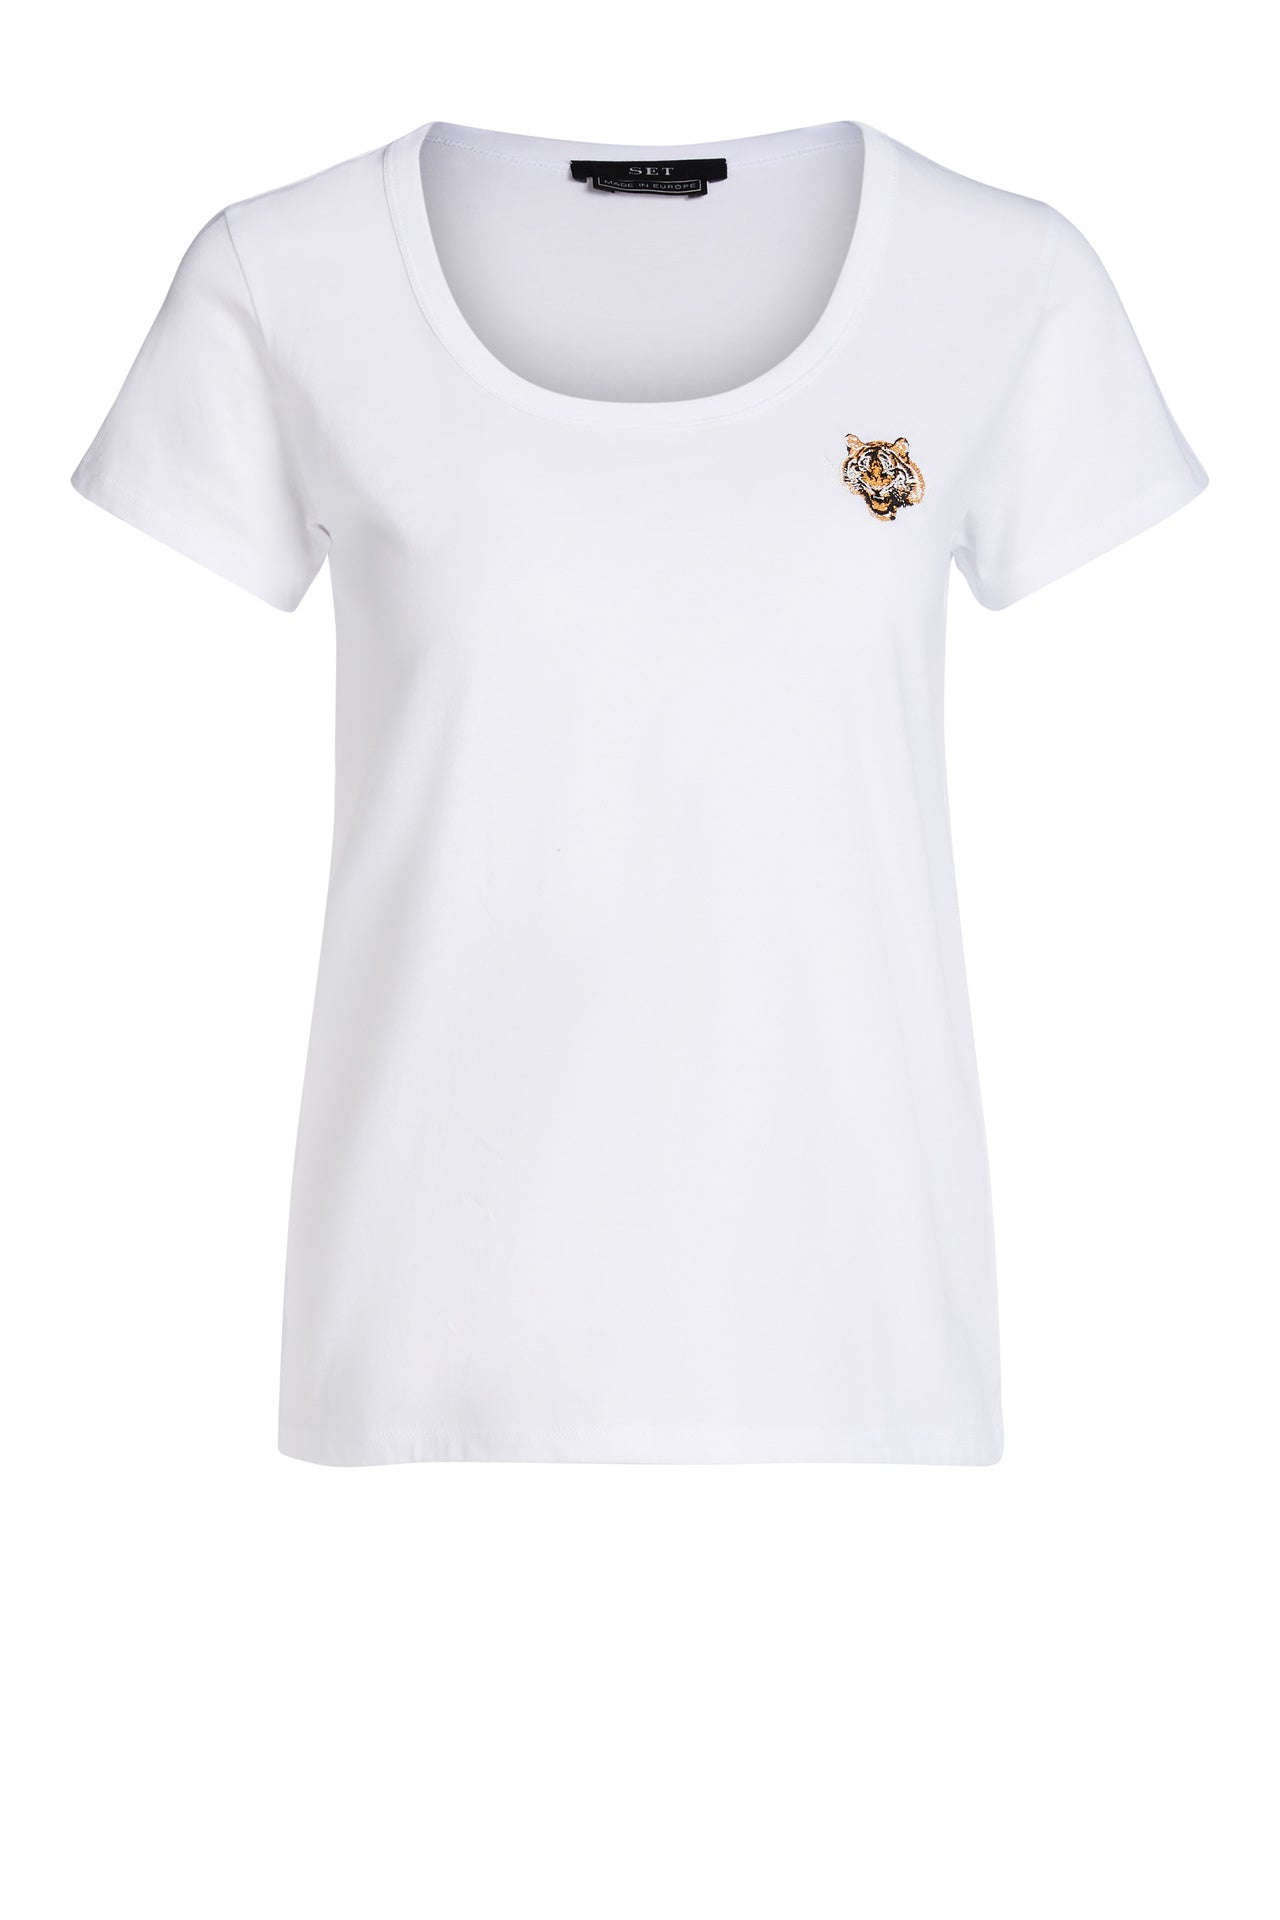 Tiger Badge T-Shirt in White